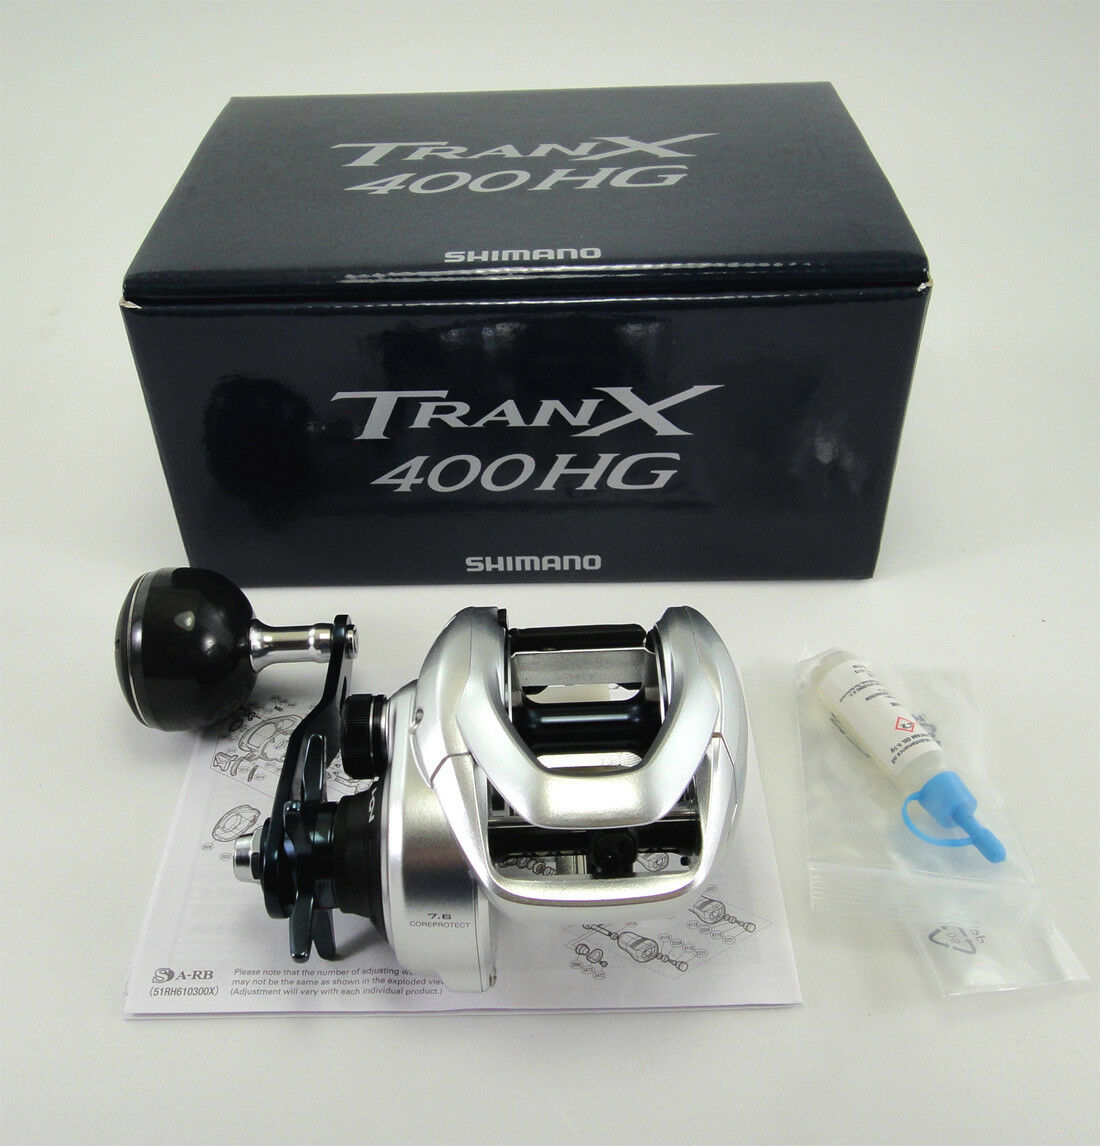 NEW  SHIMANO TRANX 400HG 400 HG Reel 7.6 1 U.S SELLER FREE 1-3 DAYS DELIVERY  top brands sell cheap